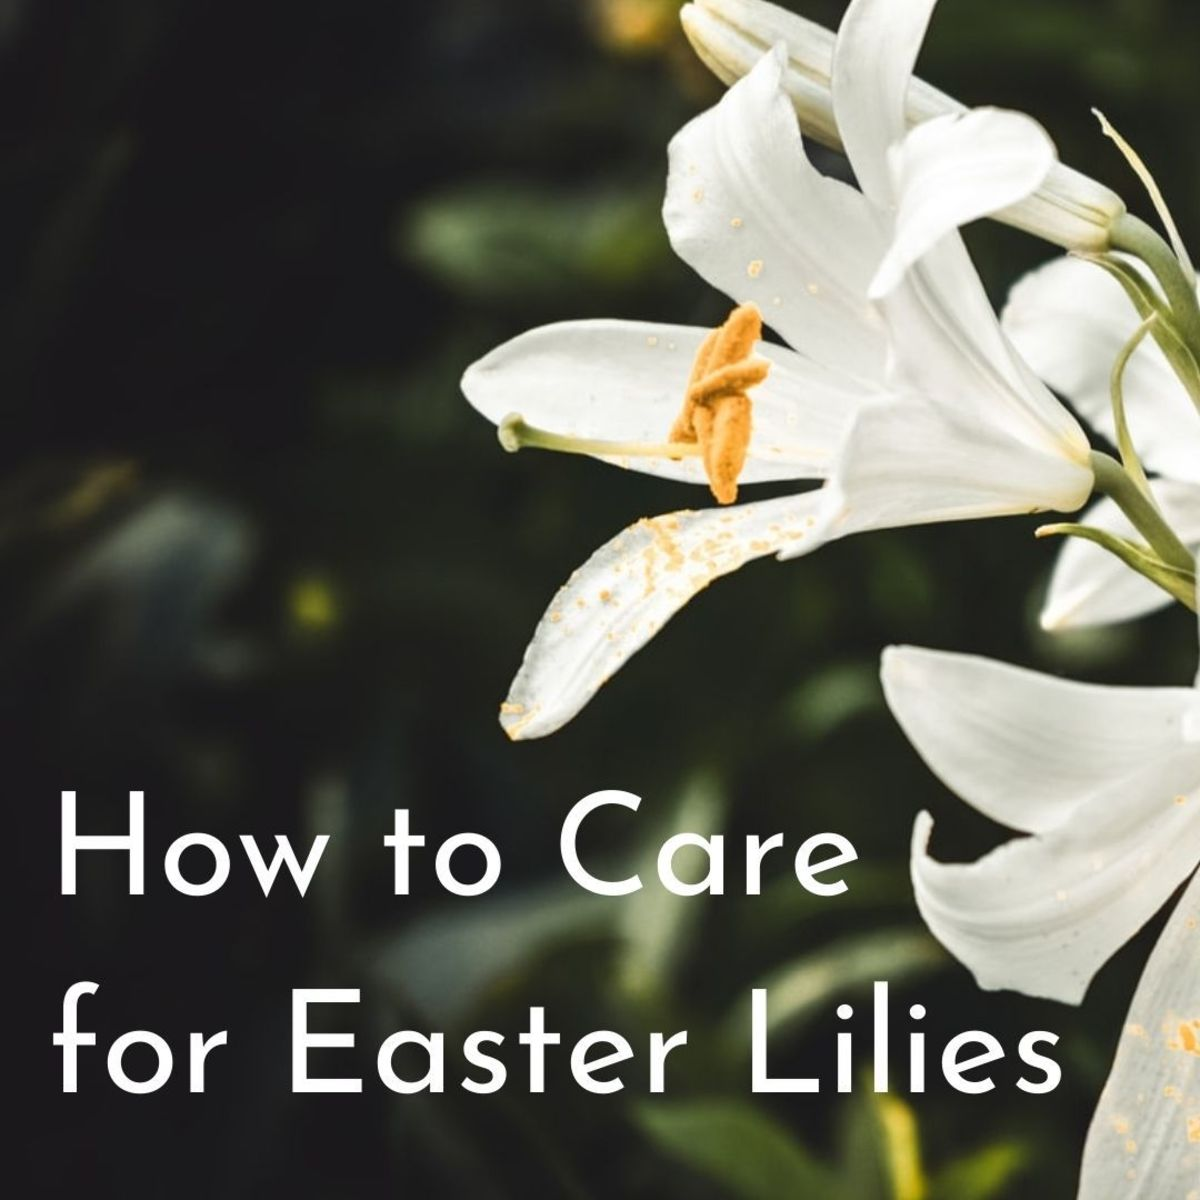 The Easter lily is a symbol of the resurrection of Christ and is referred to often in the Bible.